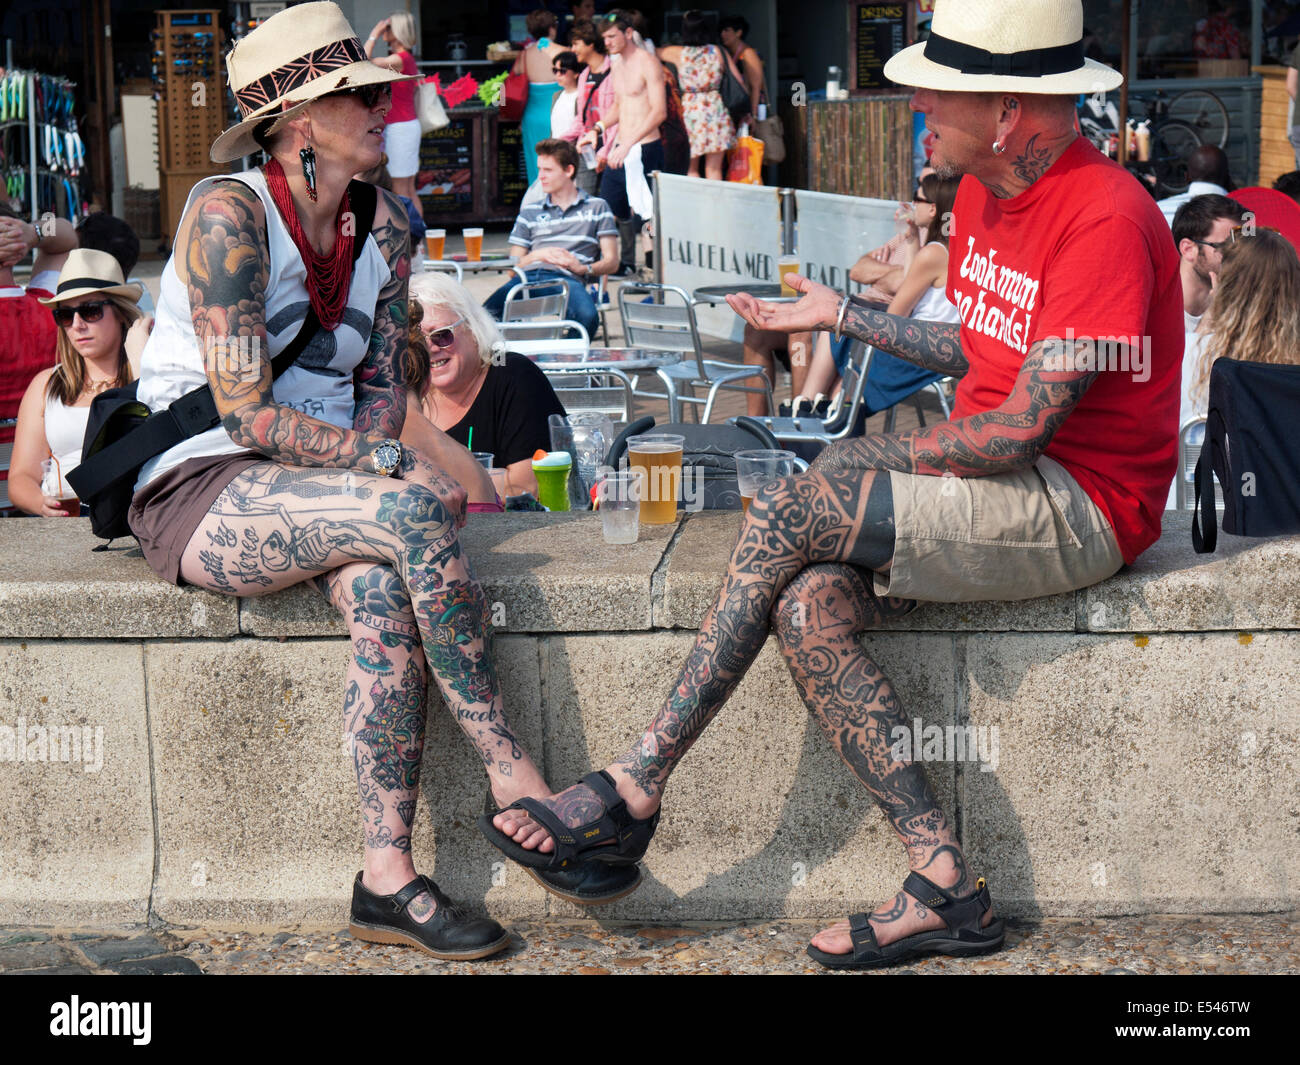 heavily tattooed people chat close to the seafront at